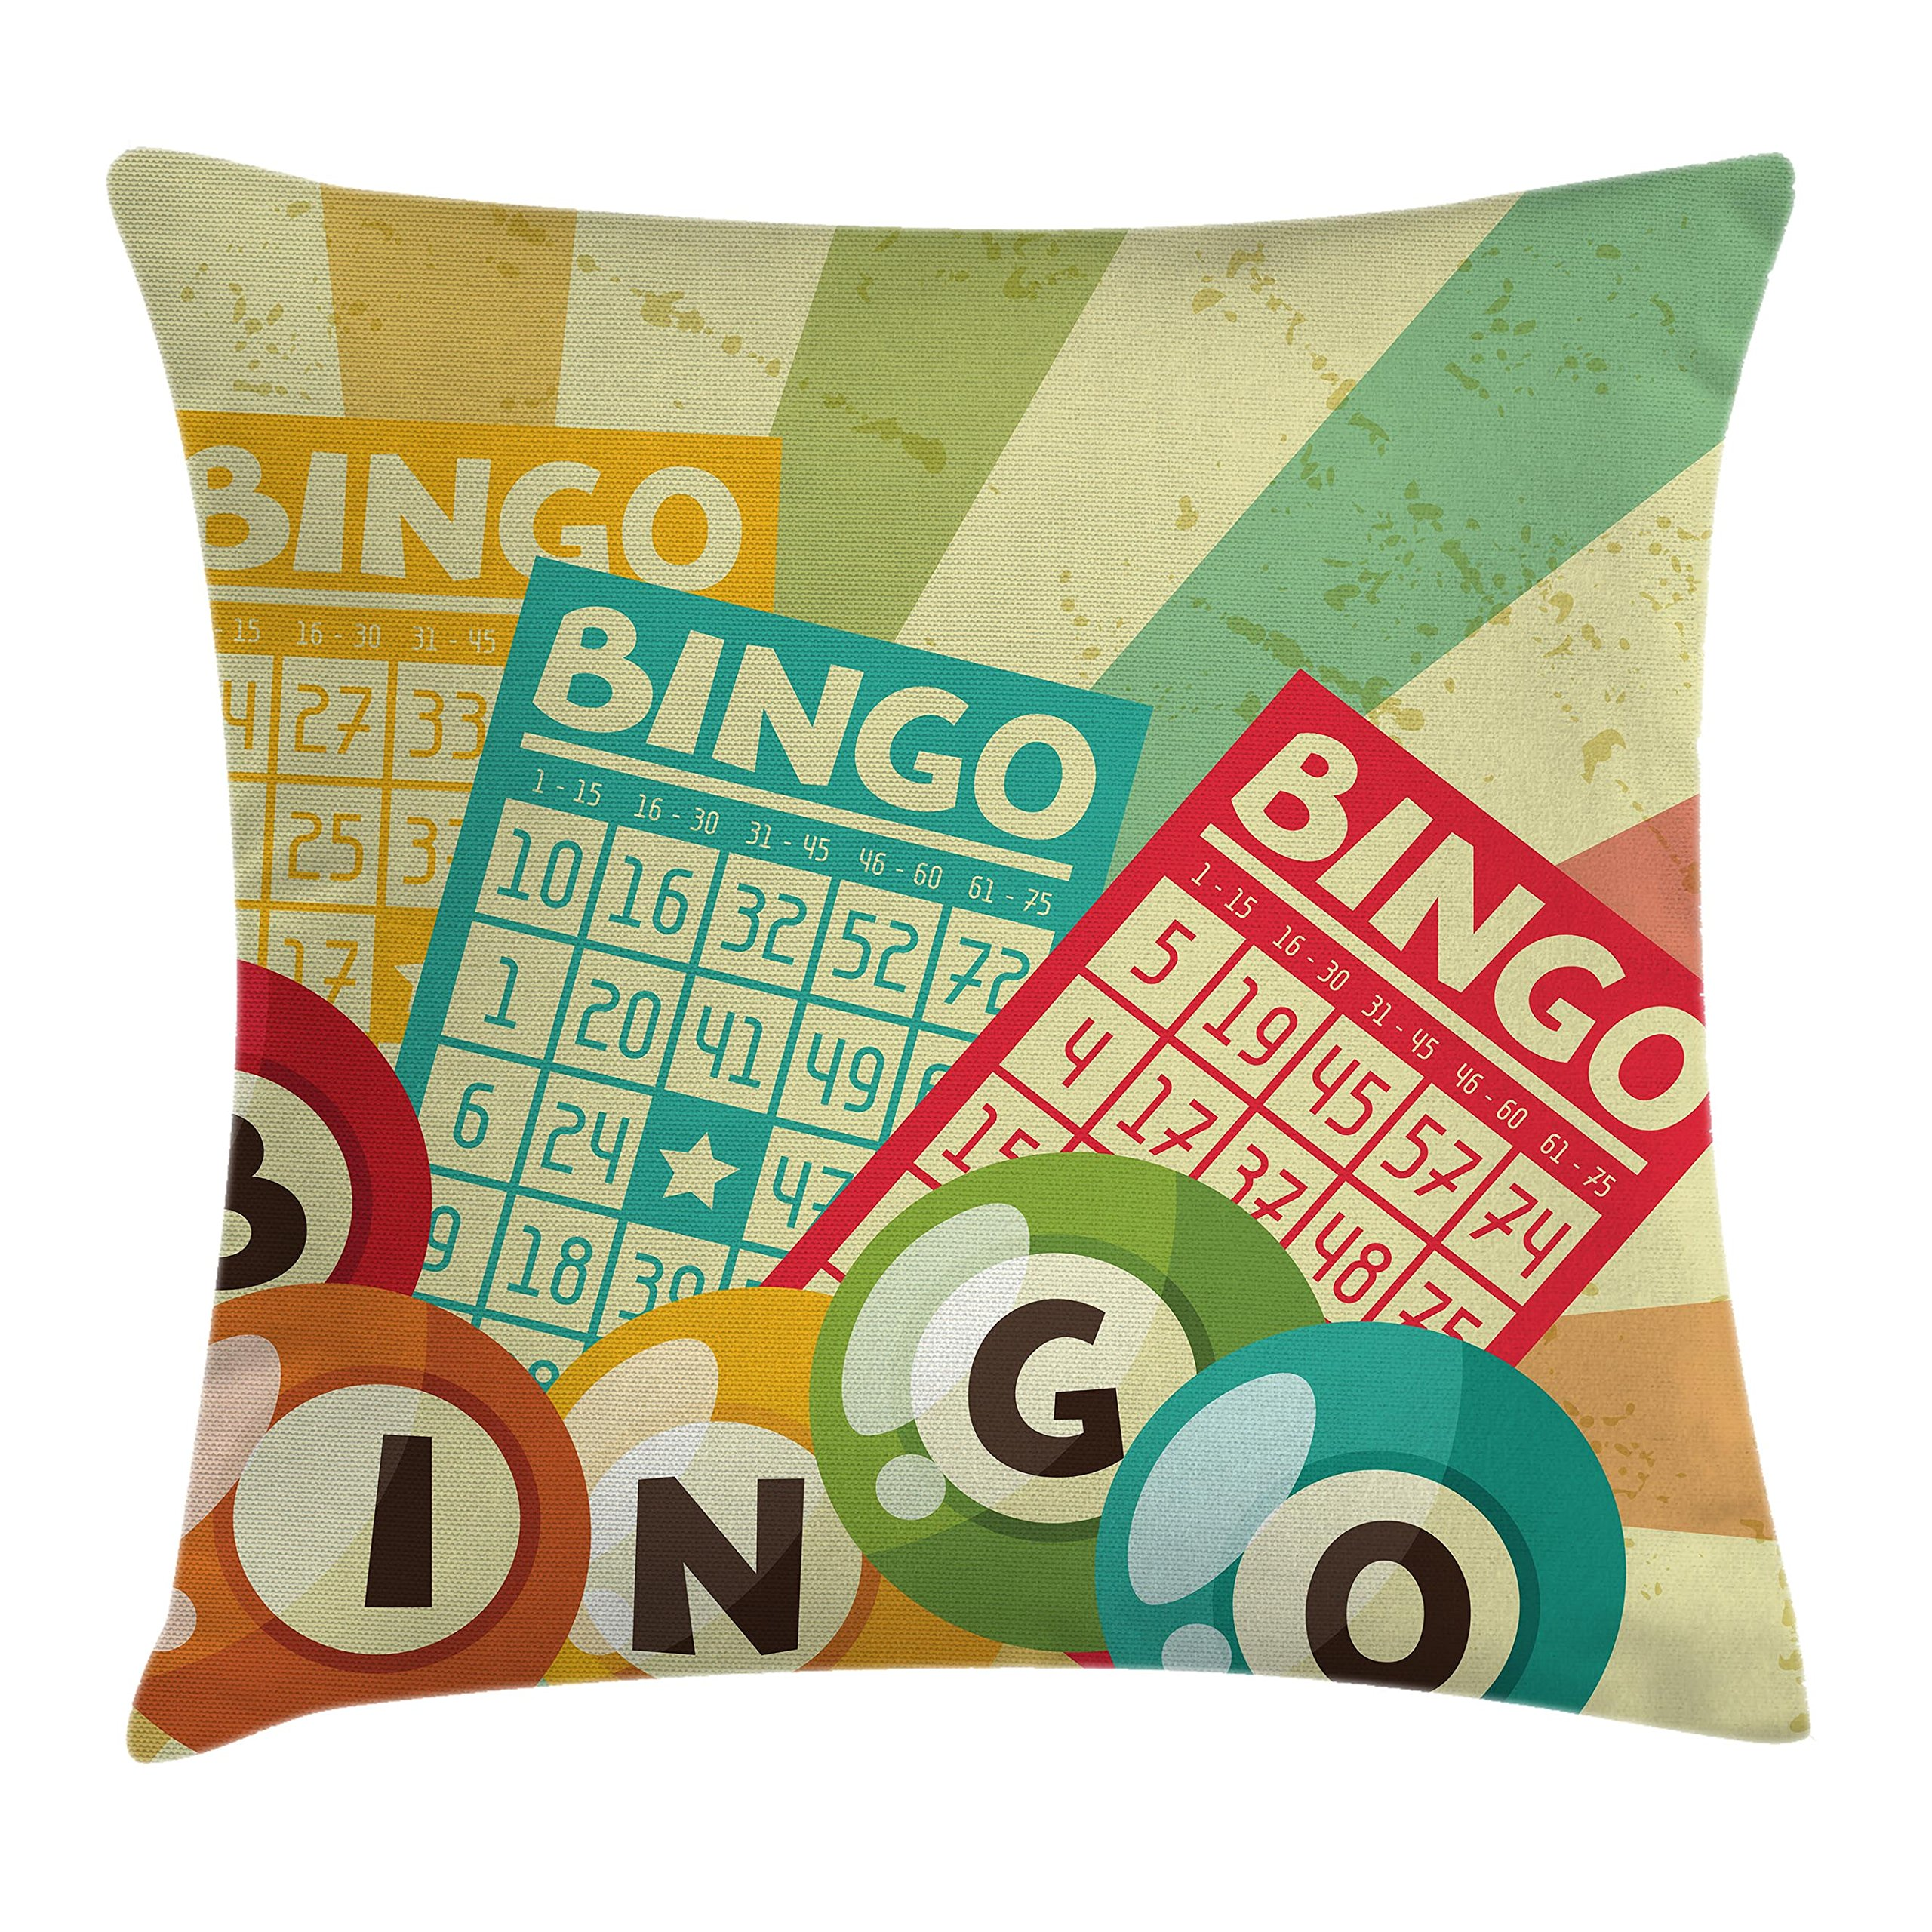 Ambesonne Vintage Decor Throw Pillow Cushion Cover, Bingo Game with Ball and Cards Pop Art Stylized Lottery Hobby Celebration Theme, Decorative Square Accent Pillow Case, 18 X 18 Inches, Multi by Ambesonne